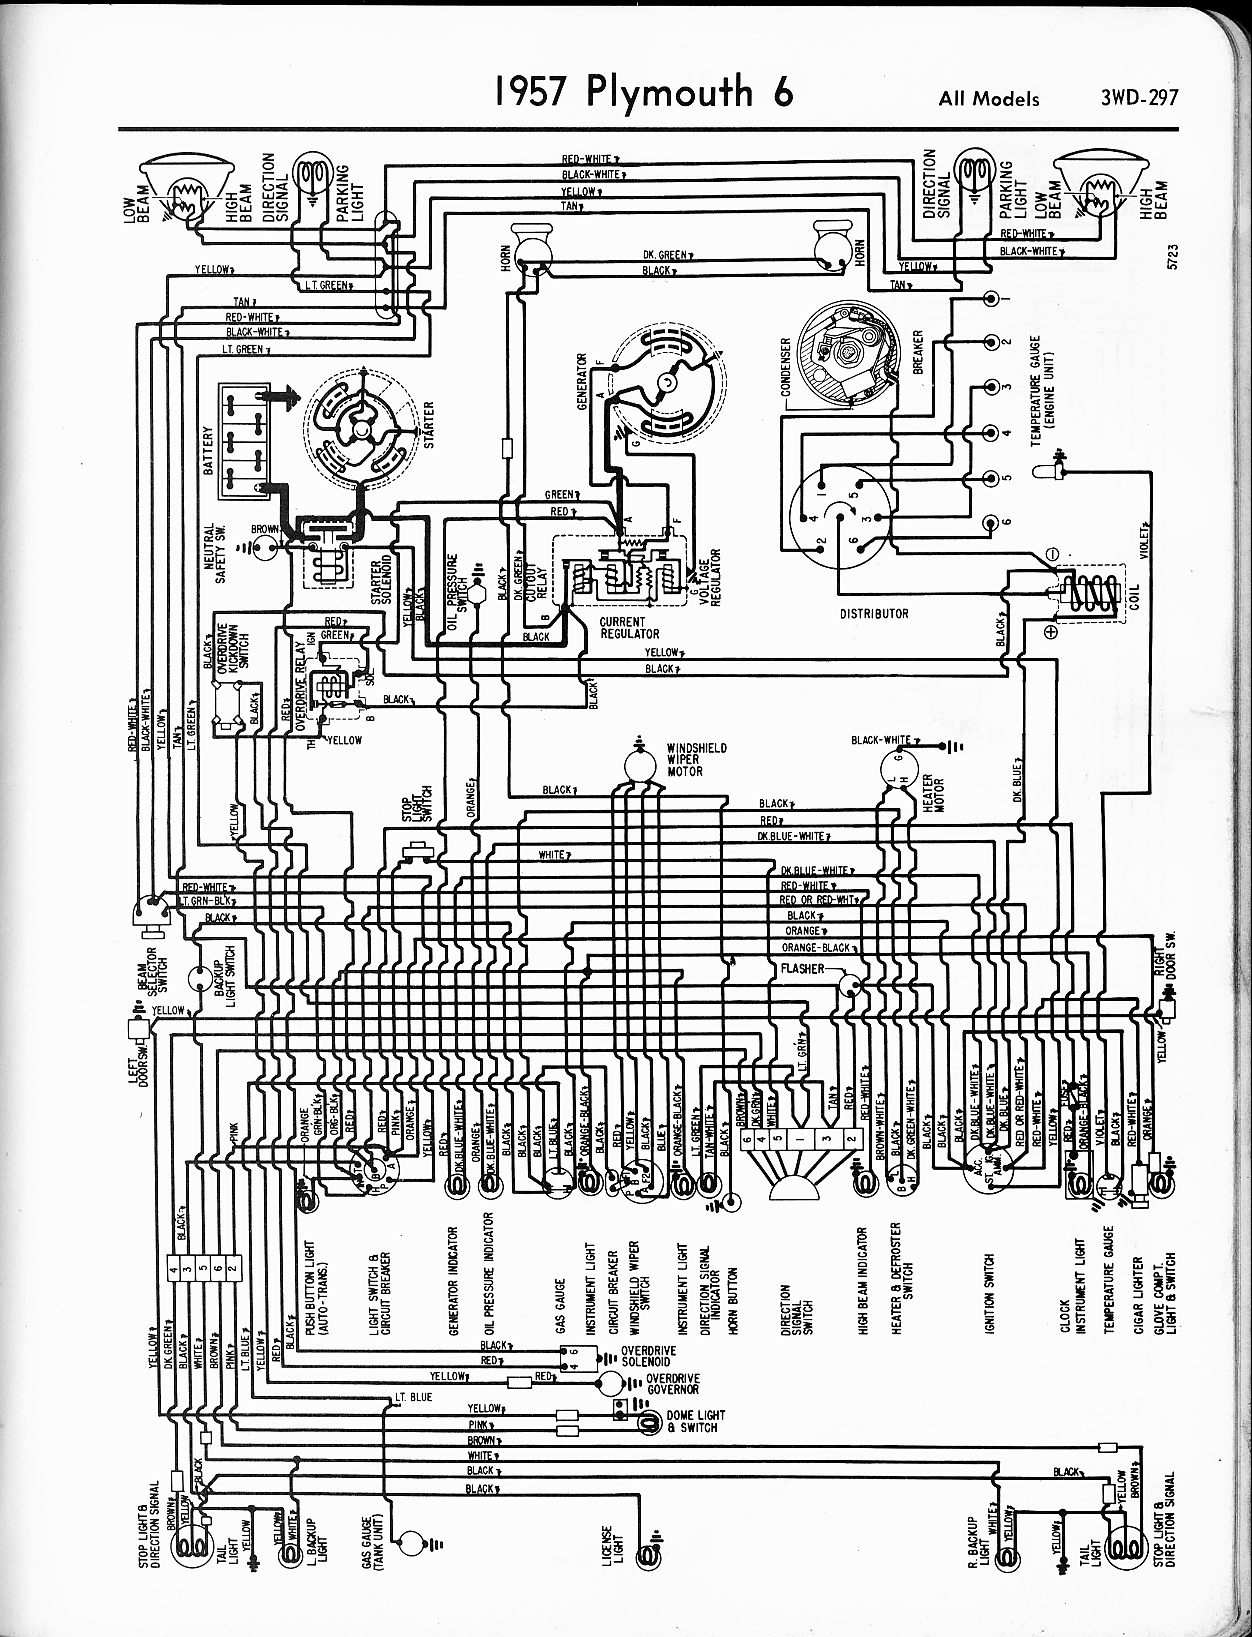 1978 Plymouth Volare Wiring Diagram Free Picture Simple Wiring Diagram  Chrysler Electronic Ignition Troubleshooting 1966 Chrysler 440 Wiring  Diagram